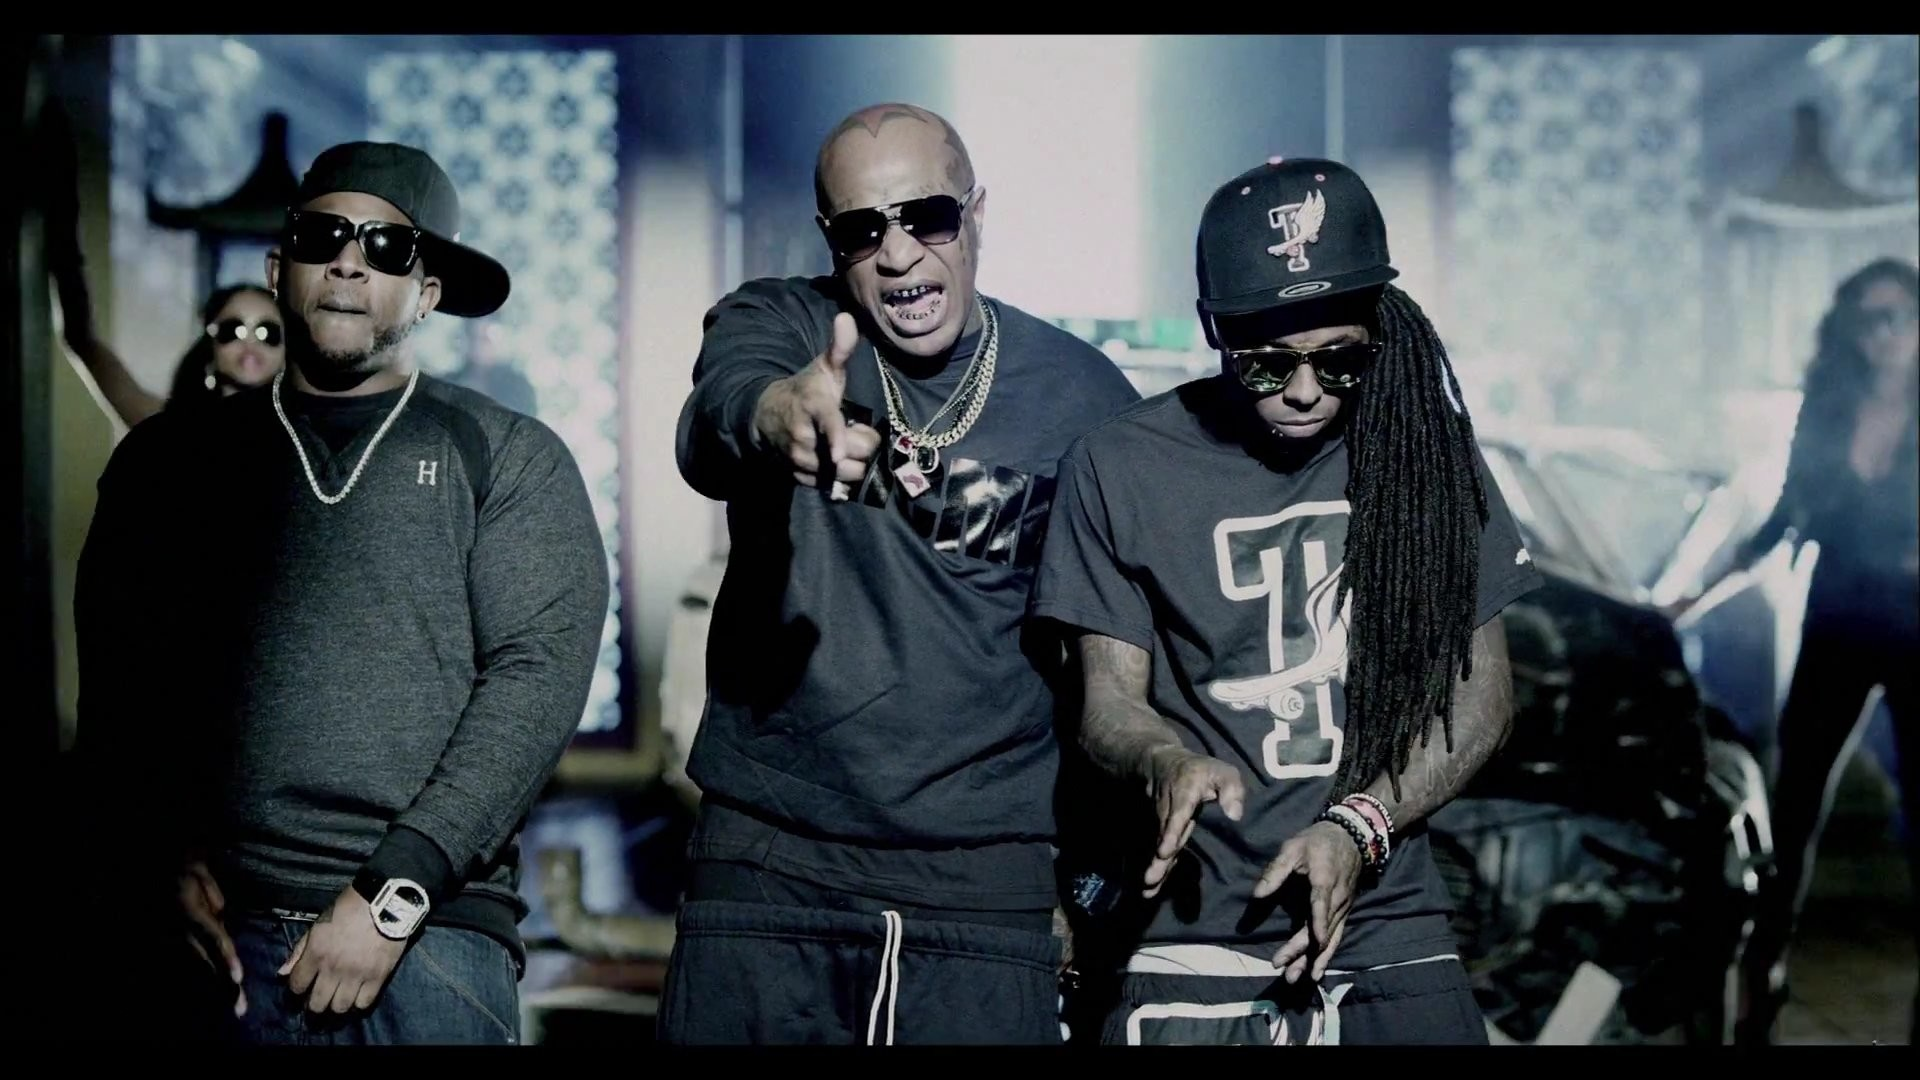 1920x1080 ... birdman wallpaper birdman ft lil wayne amp mack maine shades walldevil  ...